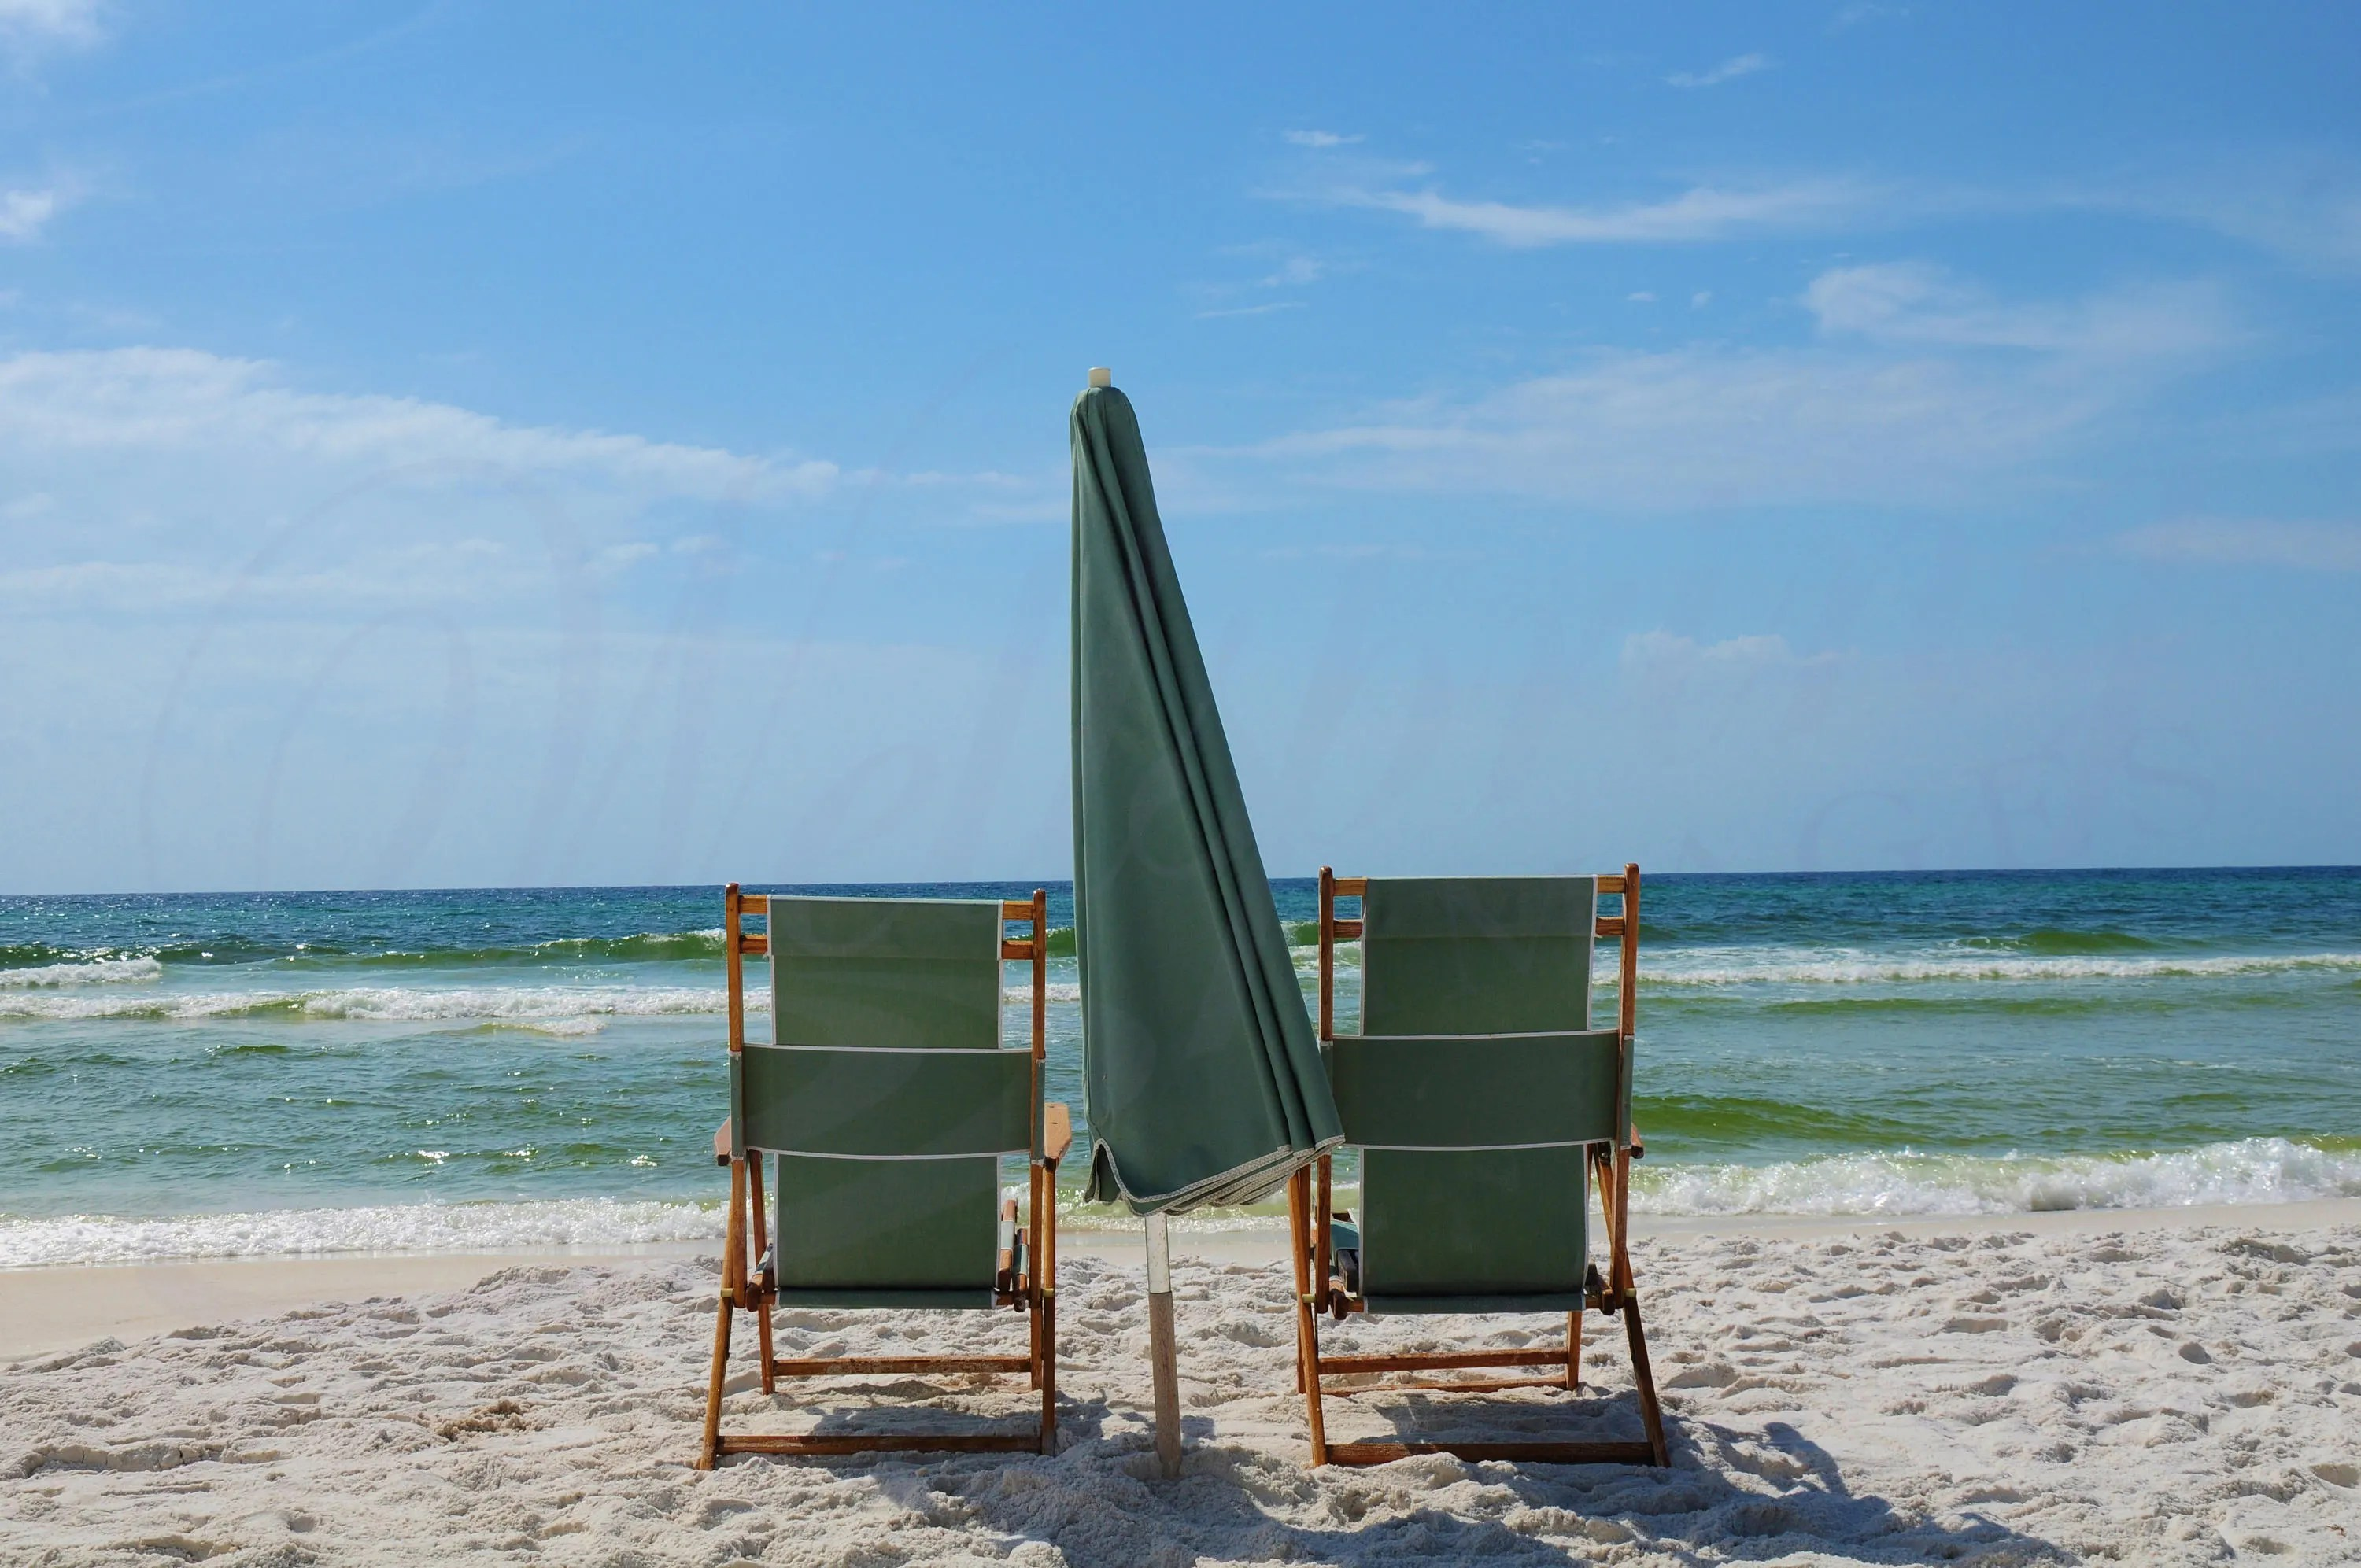 Beach Chairs With Umbrella Beach Chairs Photography Florida Beach Chairs And Umbrella Wall Art Destin Sandy Beach Chairs Photo